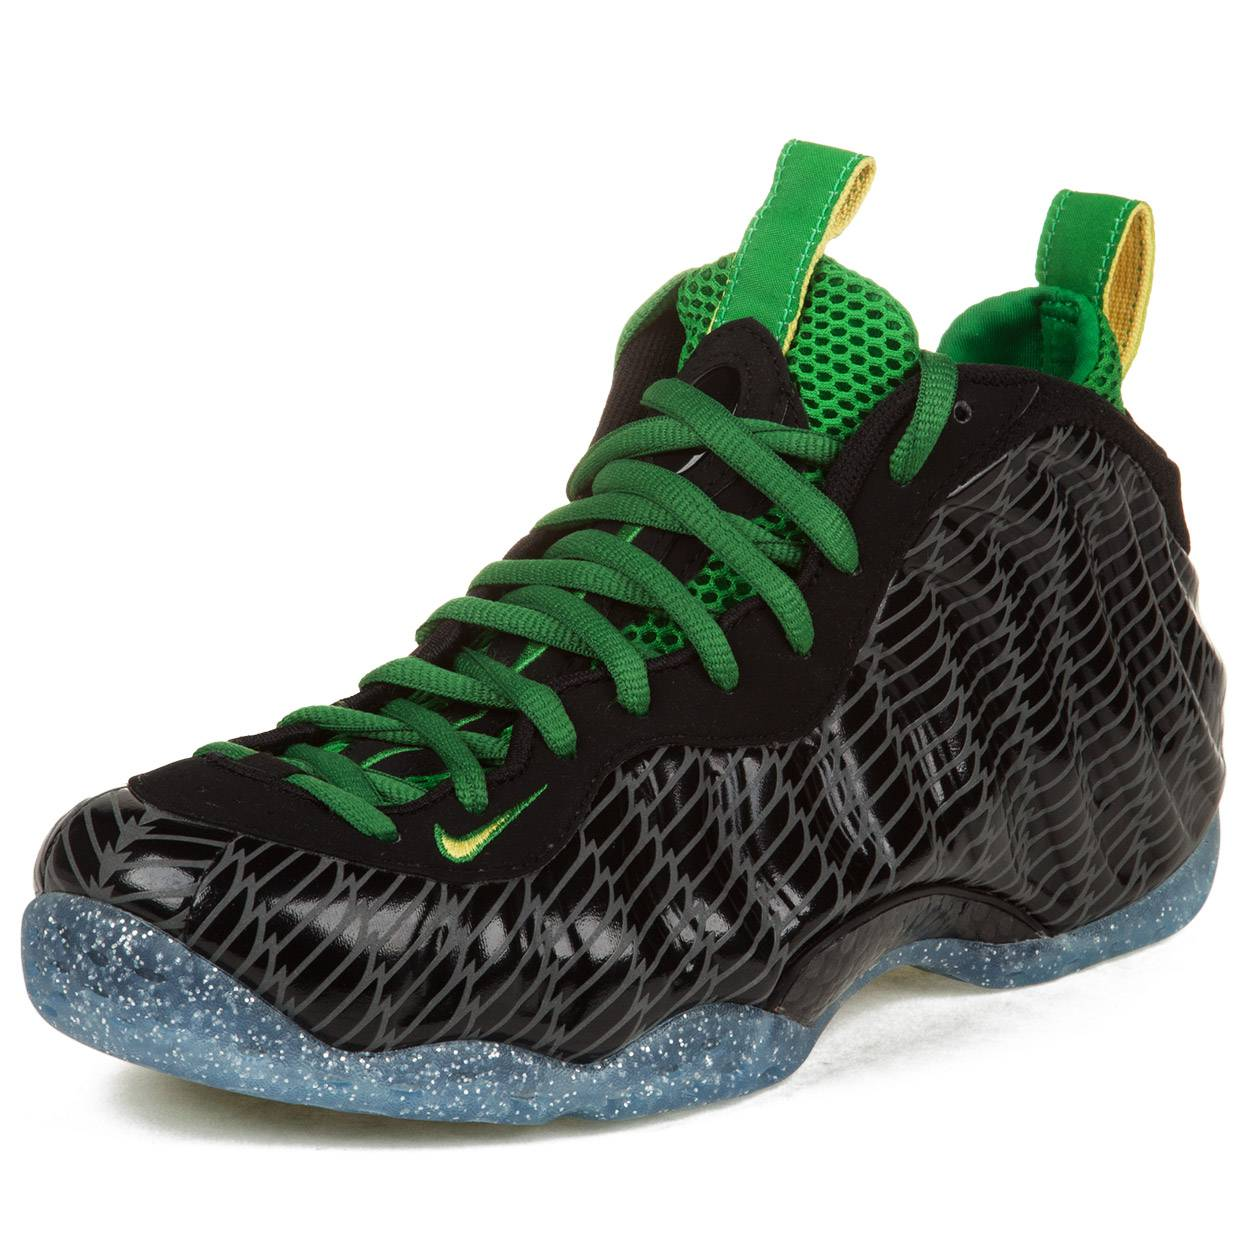 Nike Air Foamposite One Optic Yellow KicksOnFire.com